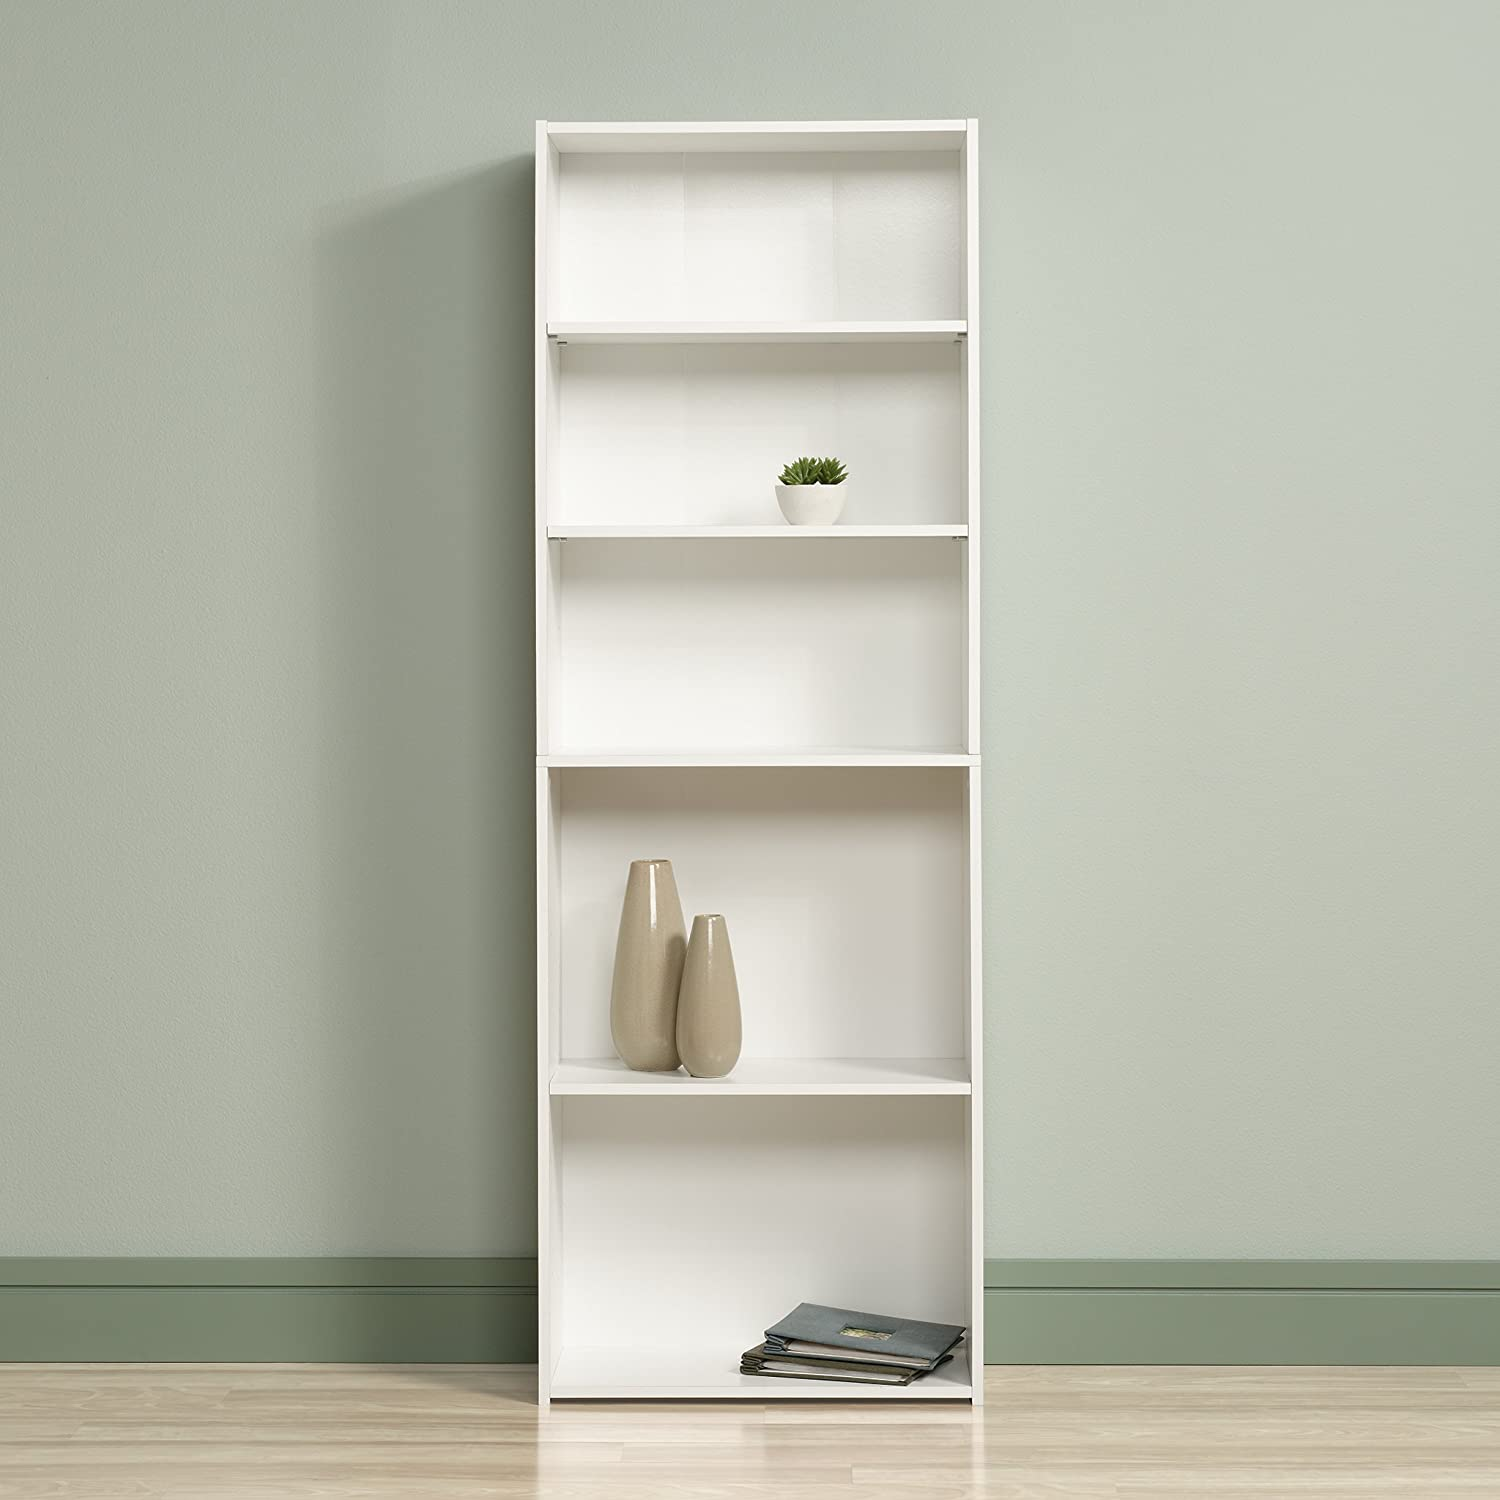 make delicate uncategorized valuable doors amazing enclosed to contemporary shelves full unit cabinet size how of formidable floating g white small and da glass bookcases engaging short bookcase storage closed engrossing with for display beguile